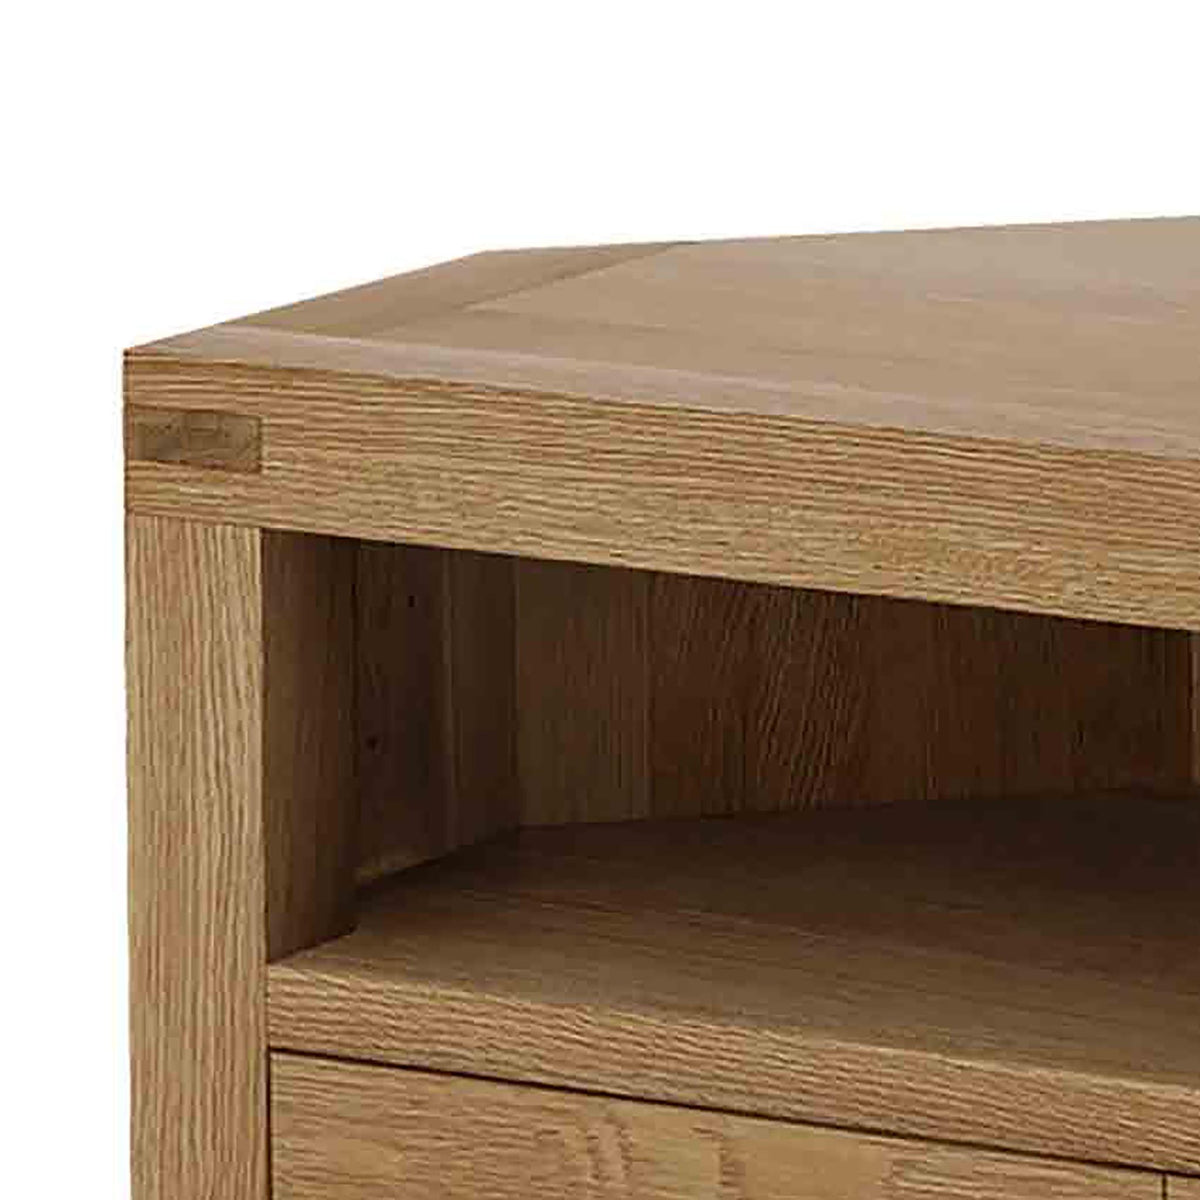 Abbey Grande Oak Corner TV Stand - Top Corner Close Up